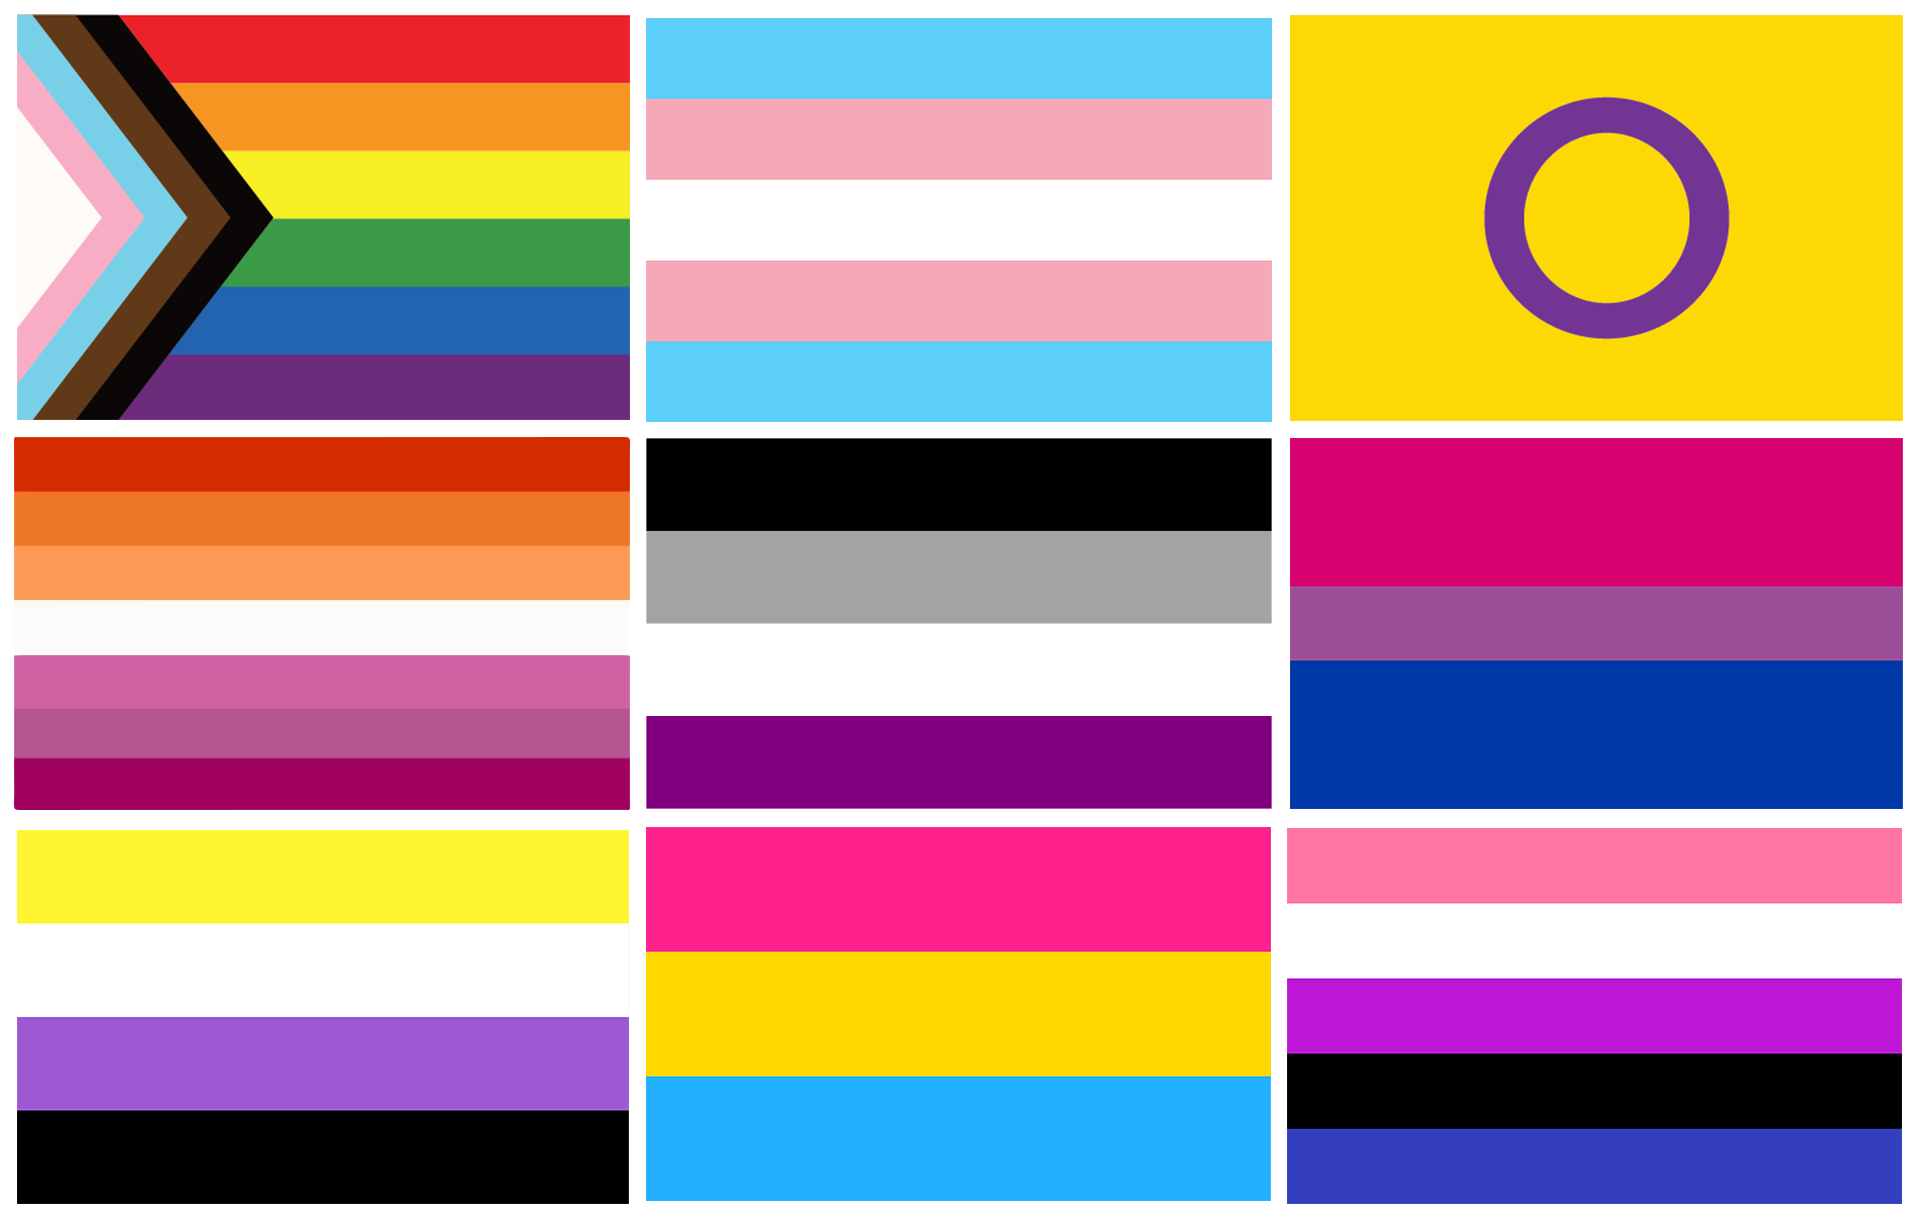 Flags of the LGBTIQ Community | OutRight Action International